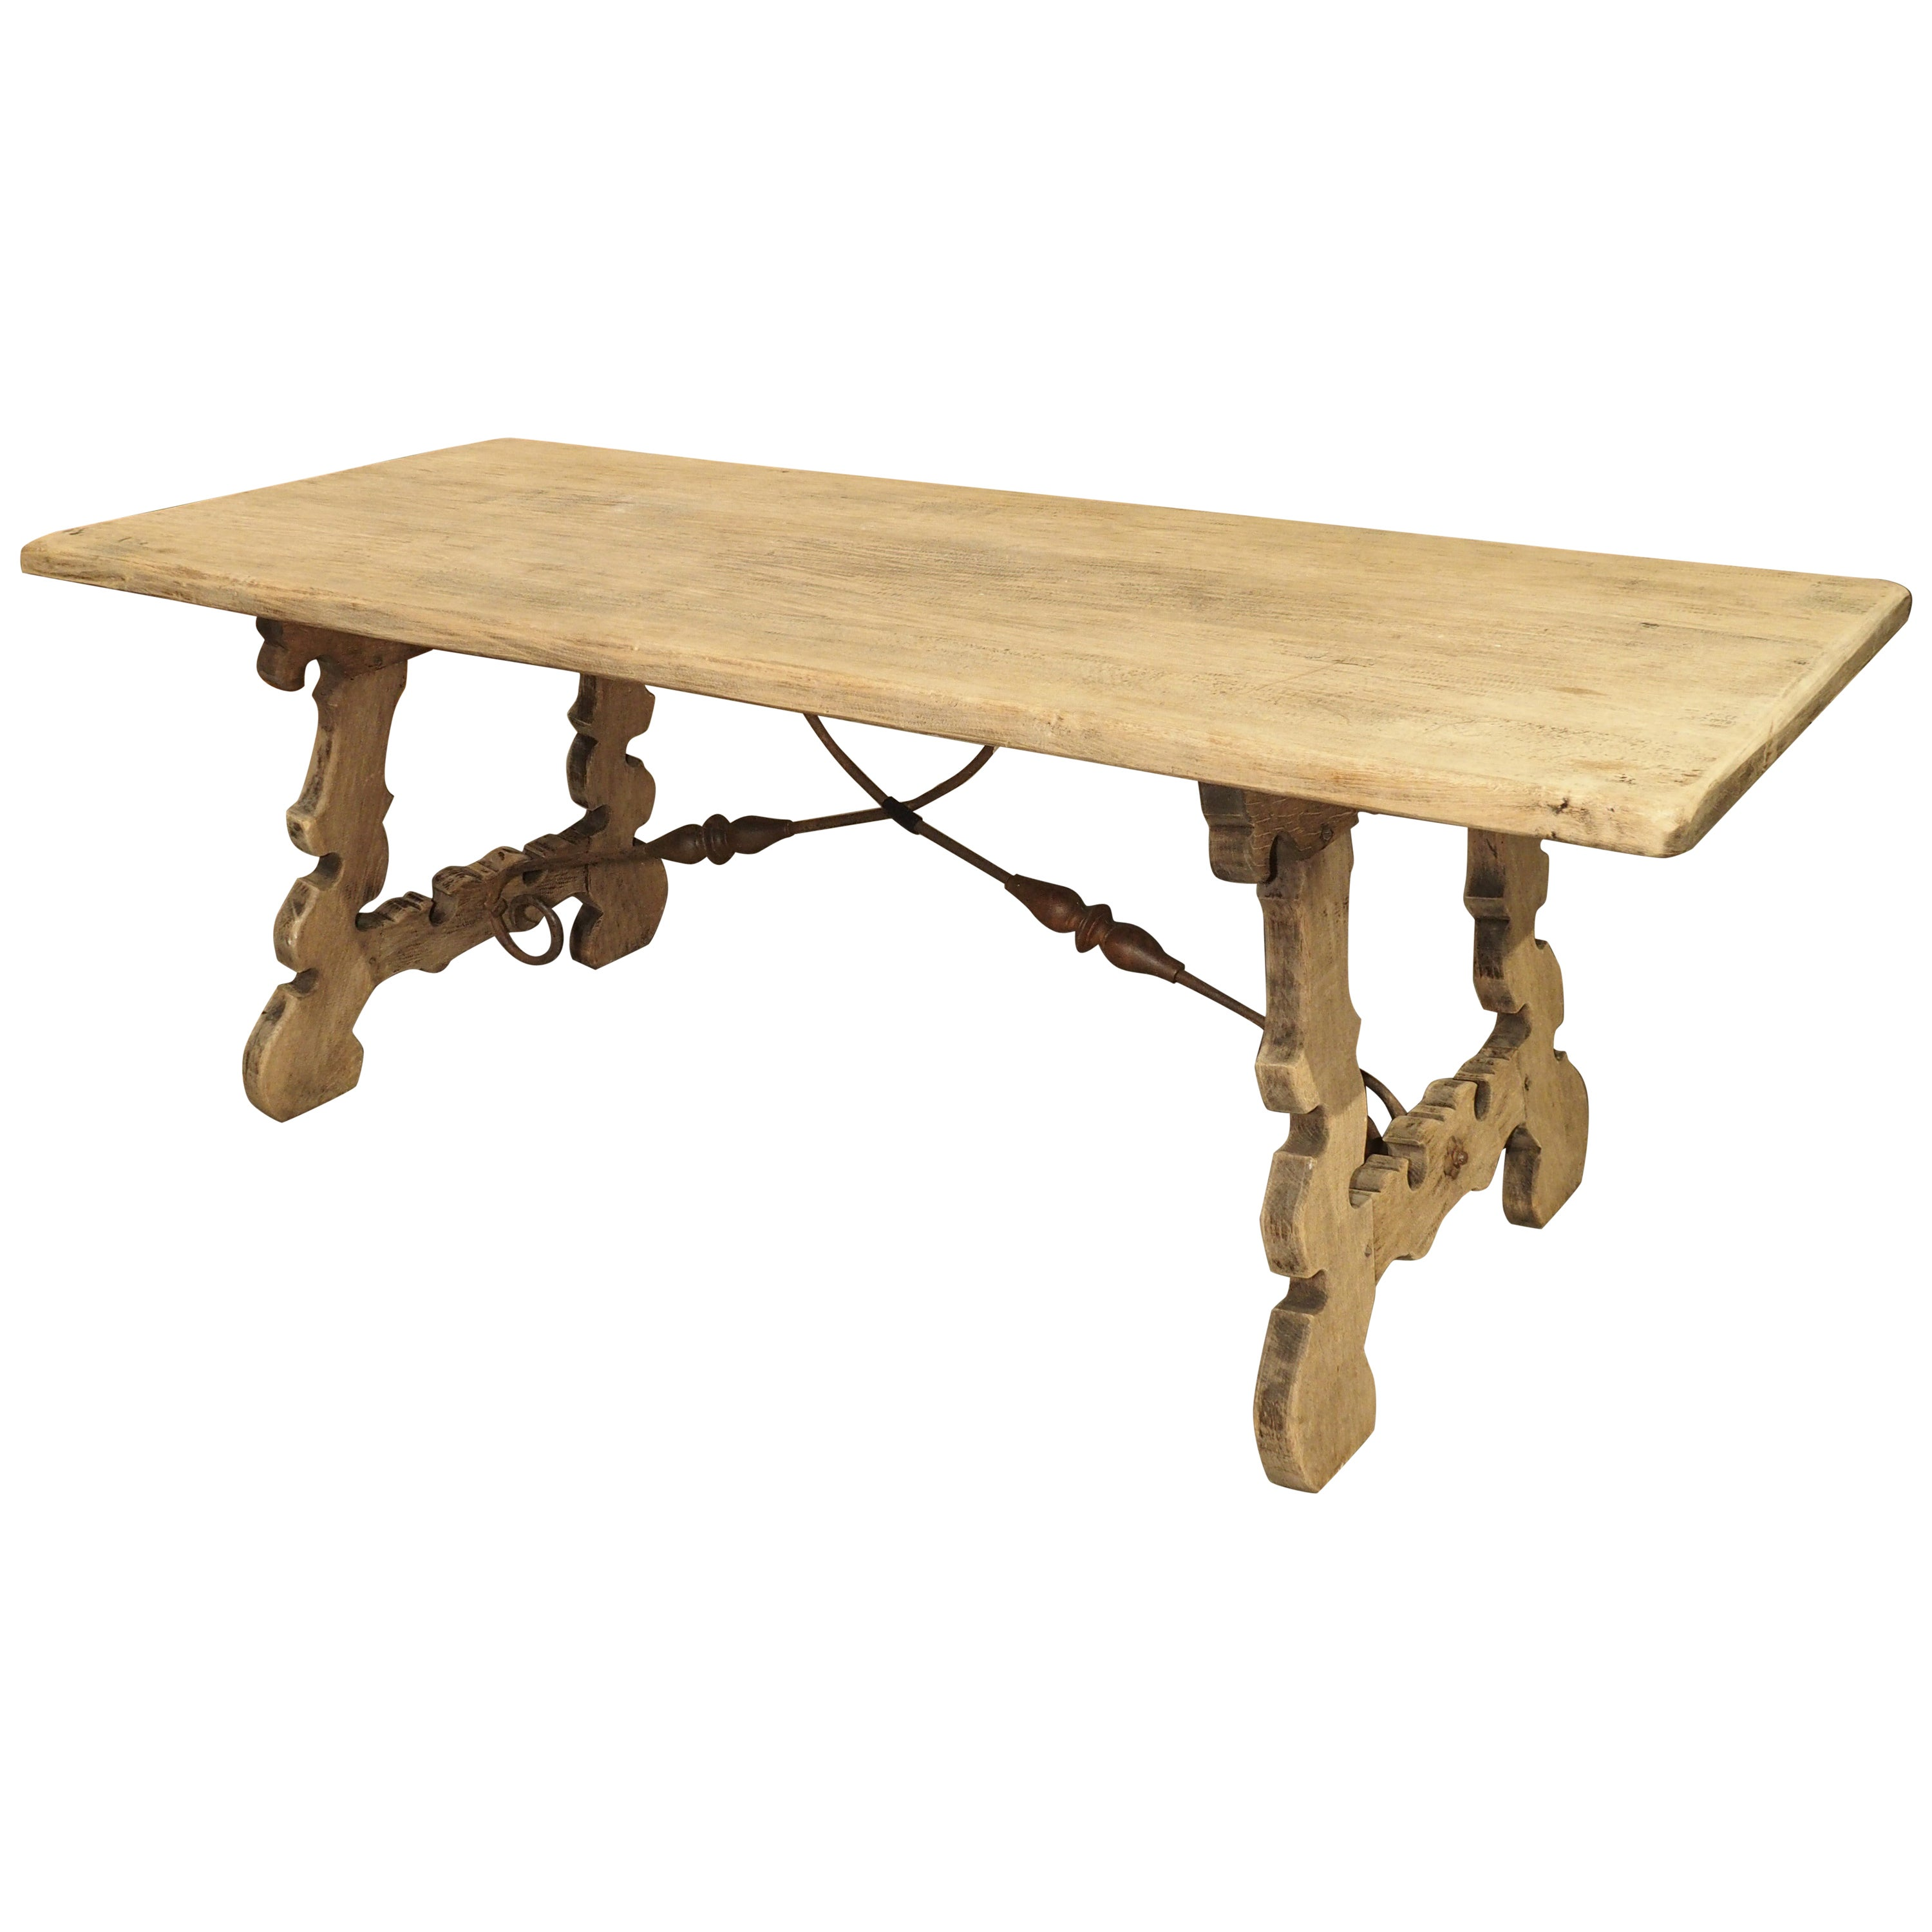 Stripped Oak Dining Table with Wrought Iron Stretchers from Spain, 20th Century